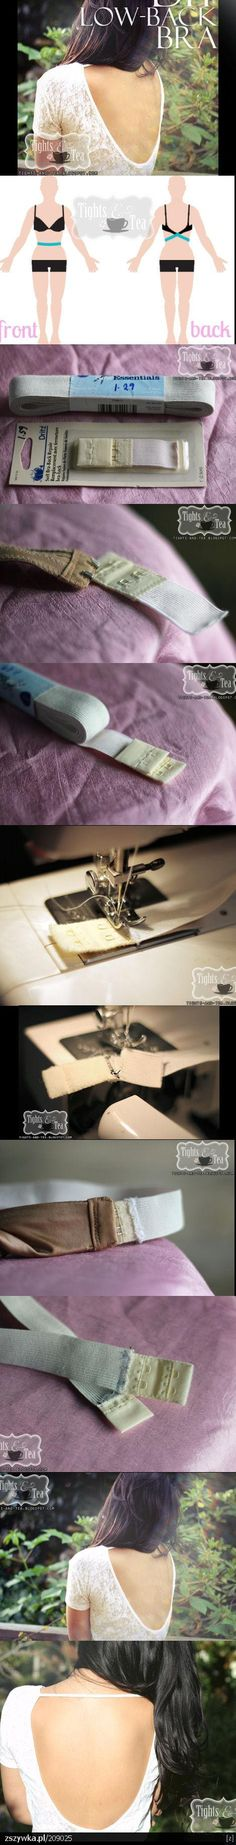 From the Runway to Your Closet, DIY Fashion Tips – FunFashionistaTips Sewing Bras, Sewing Lingerie, Sewing Clothes, Sewing Hacks, Sewing Tutorials, Sewing Projects, Sewing Patterns, Diy Bra, Bra Hacks